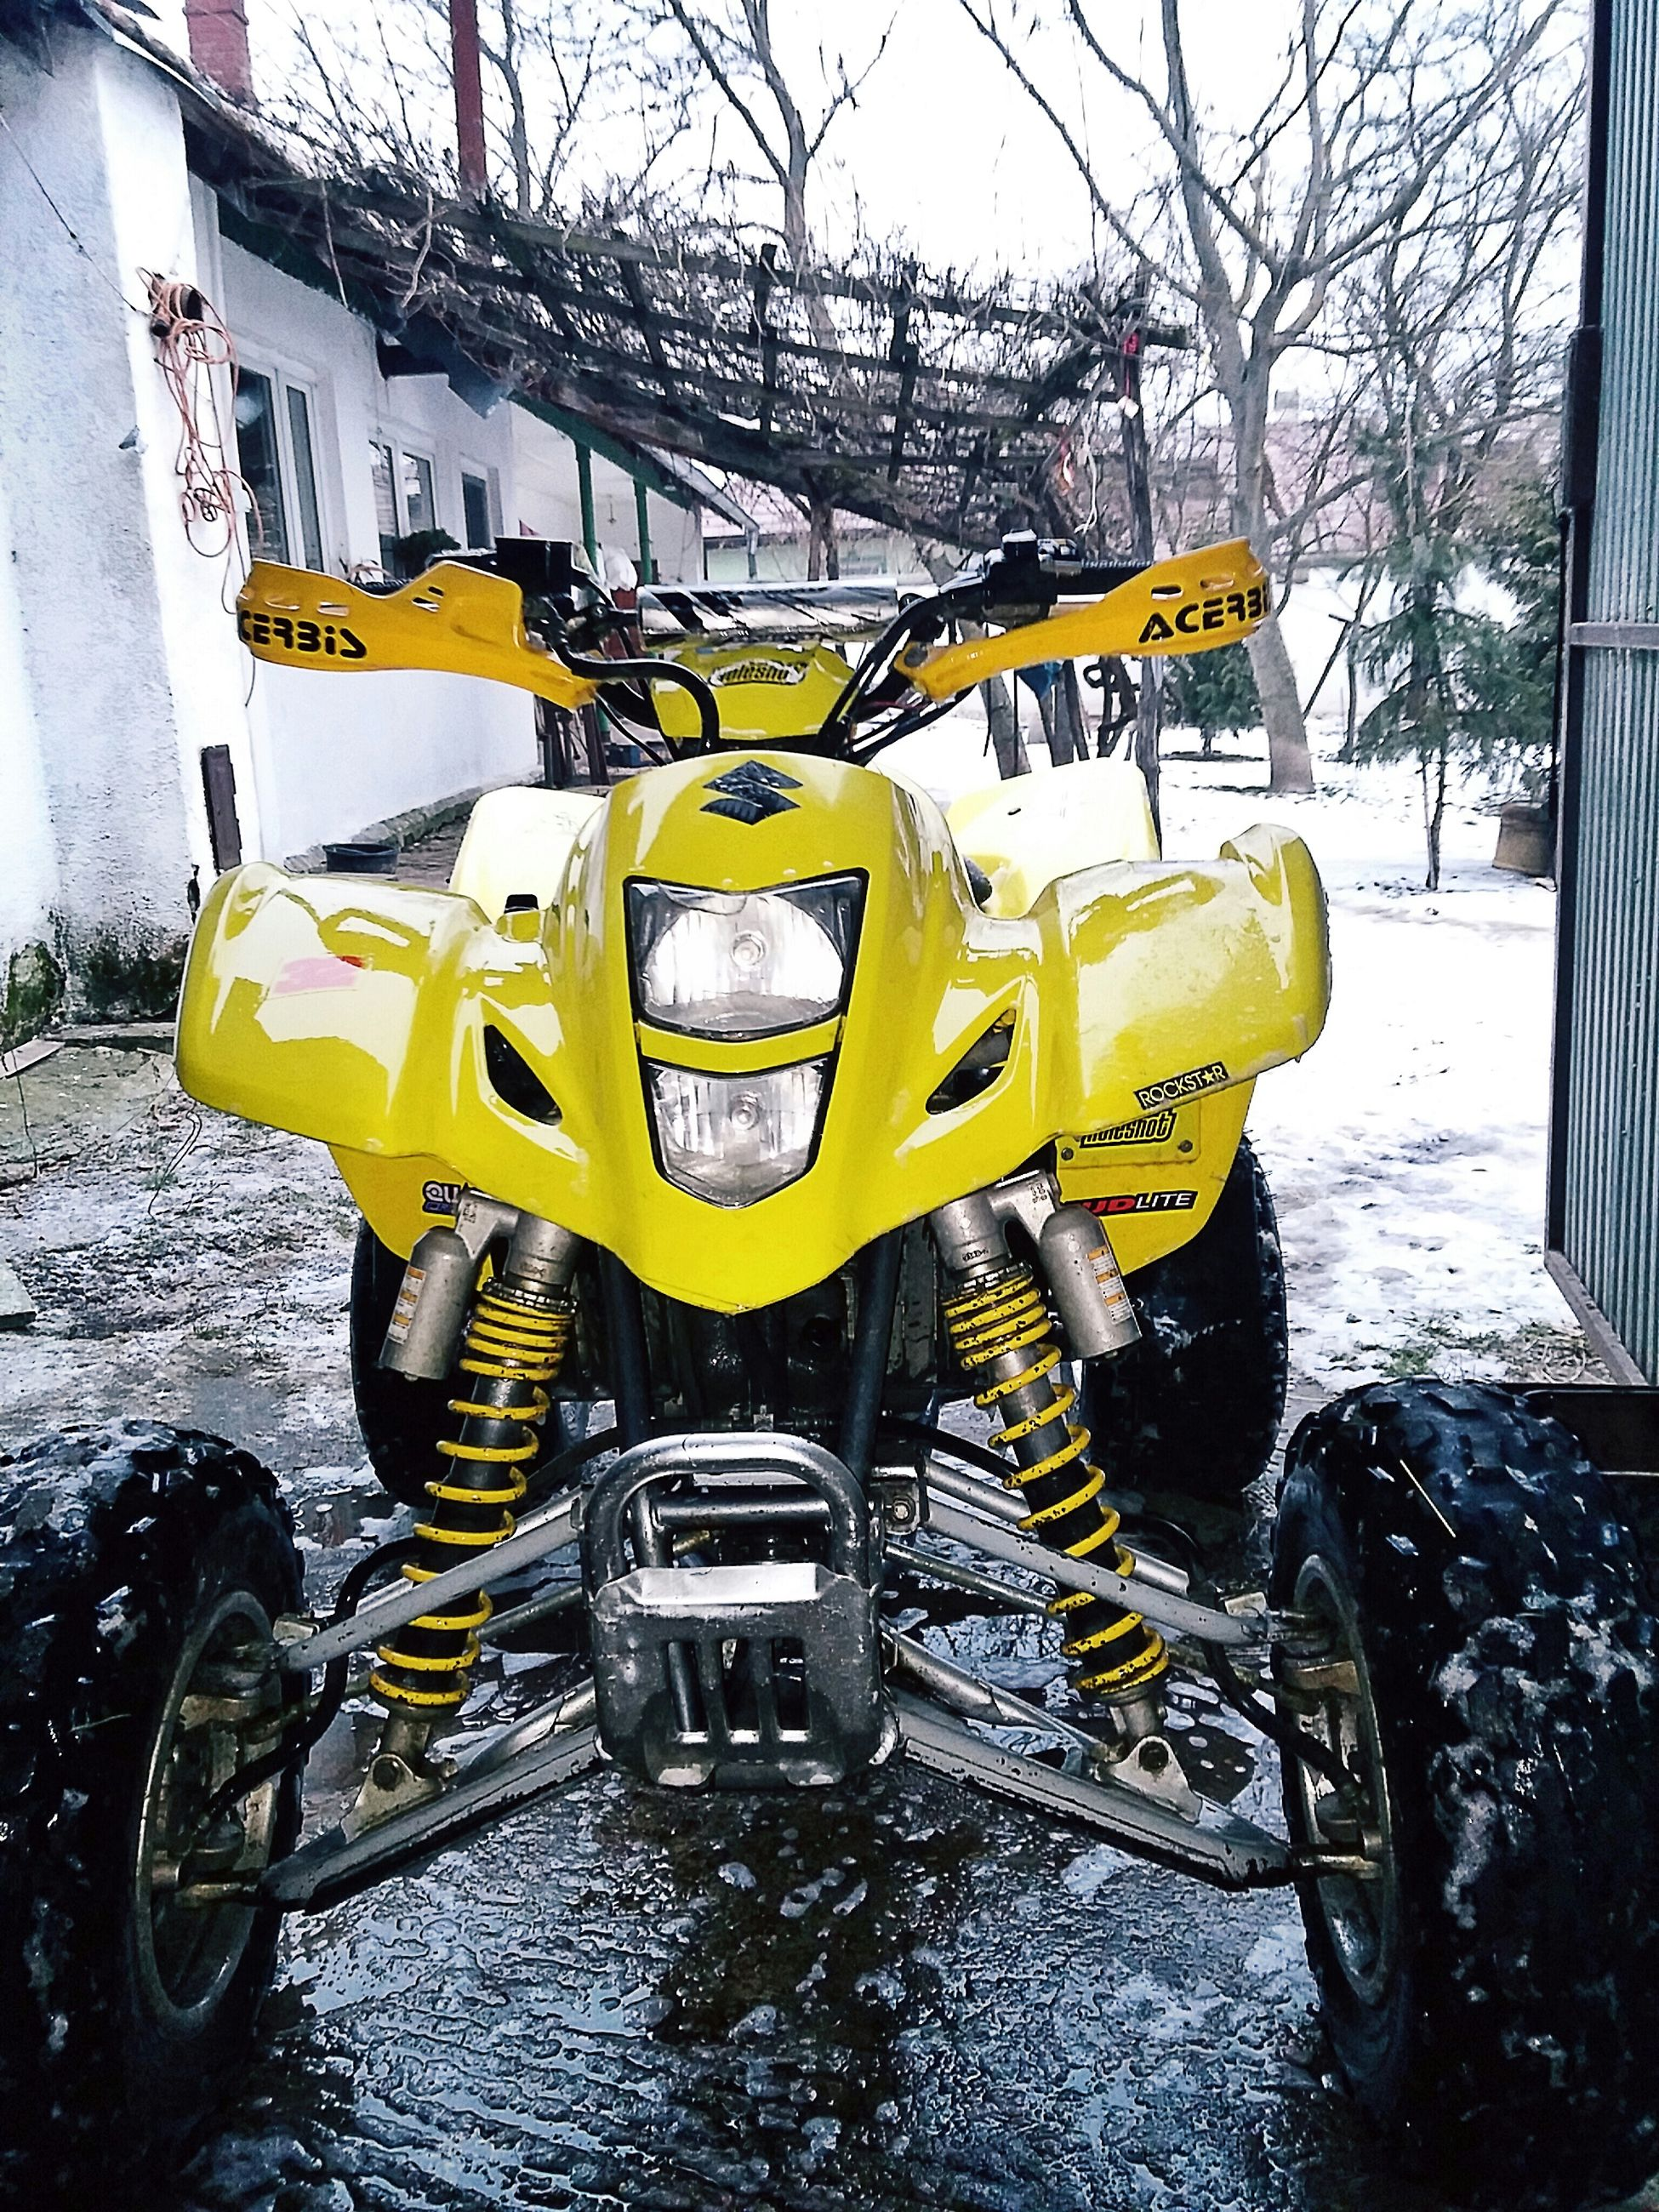 transportation, mode of transport, land vehicle, yellow, street, car, season, bicycle, stationary, parking, outdoors, water, day, tree, parked, road, weather, sidewalk, winter, travel